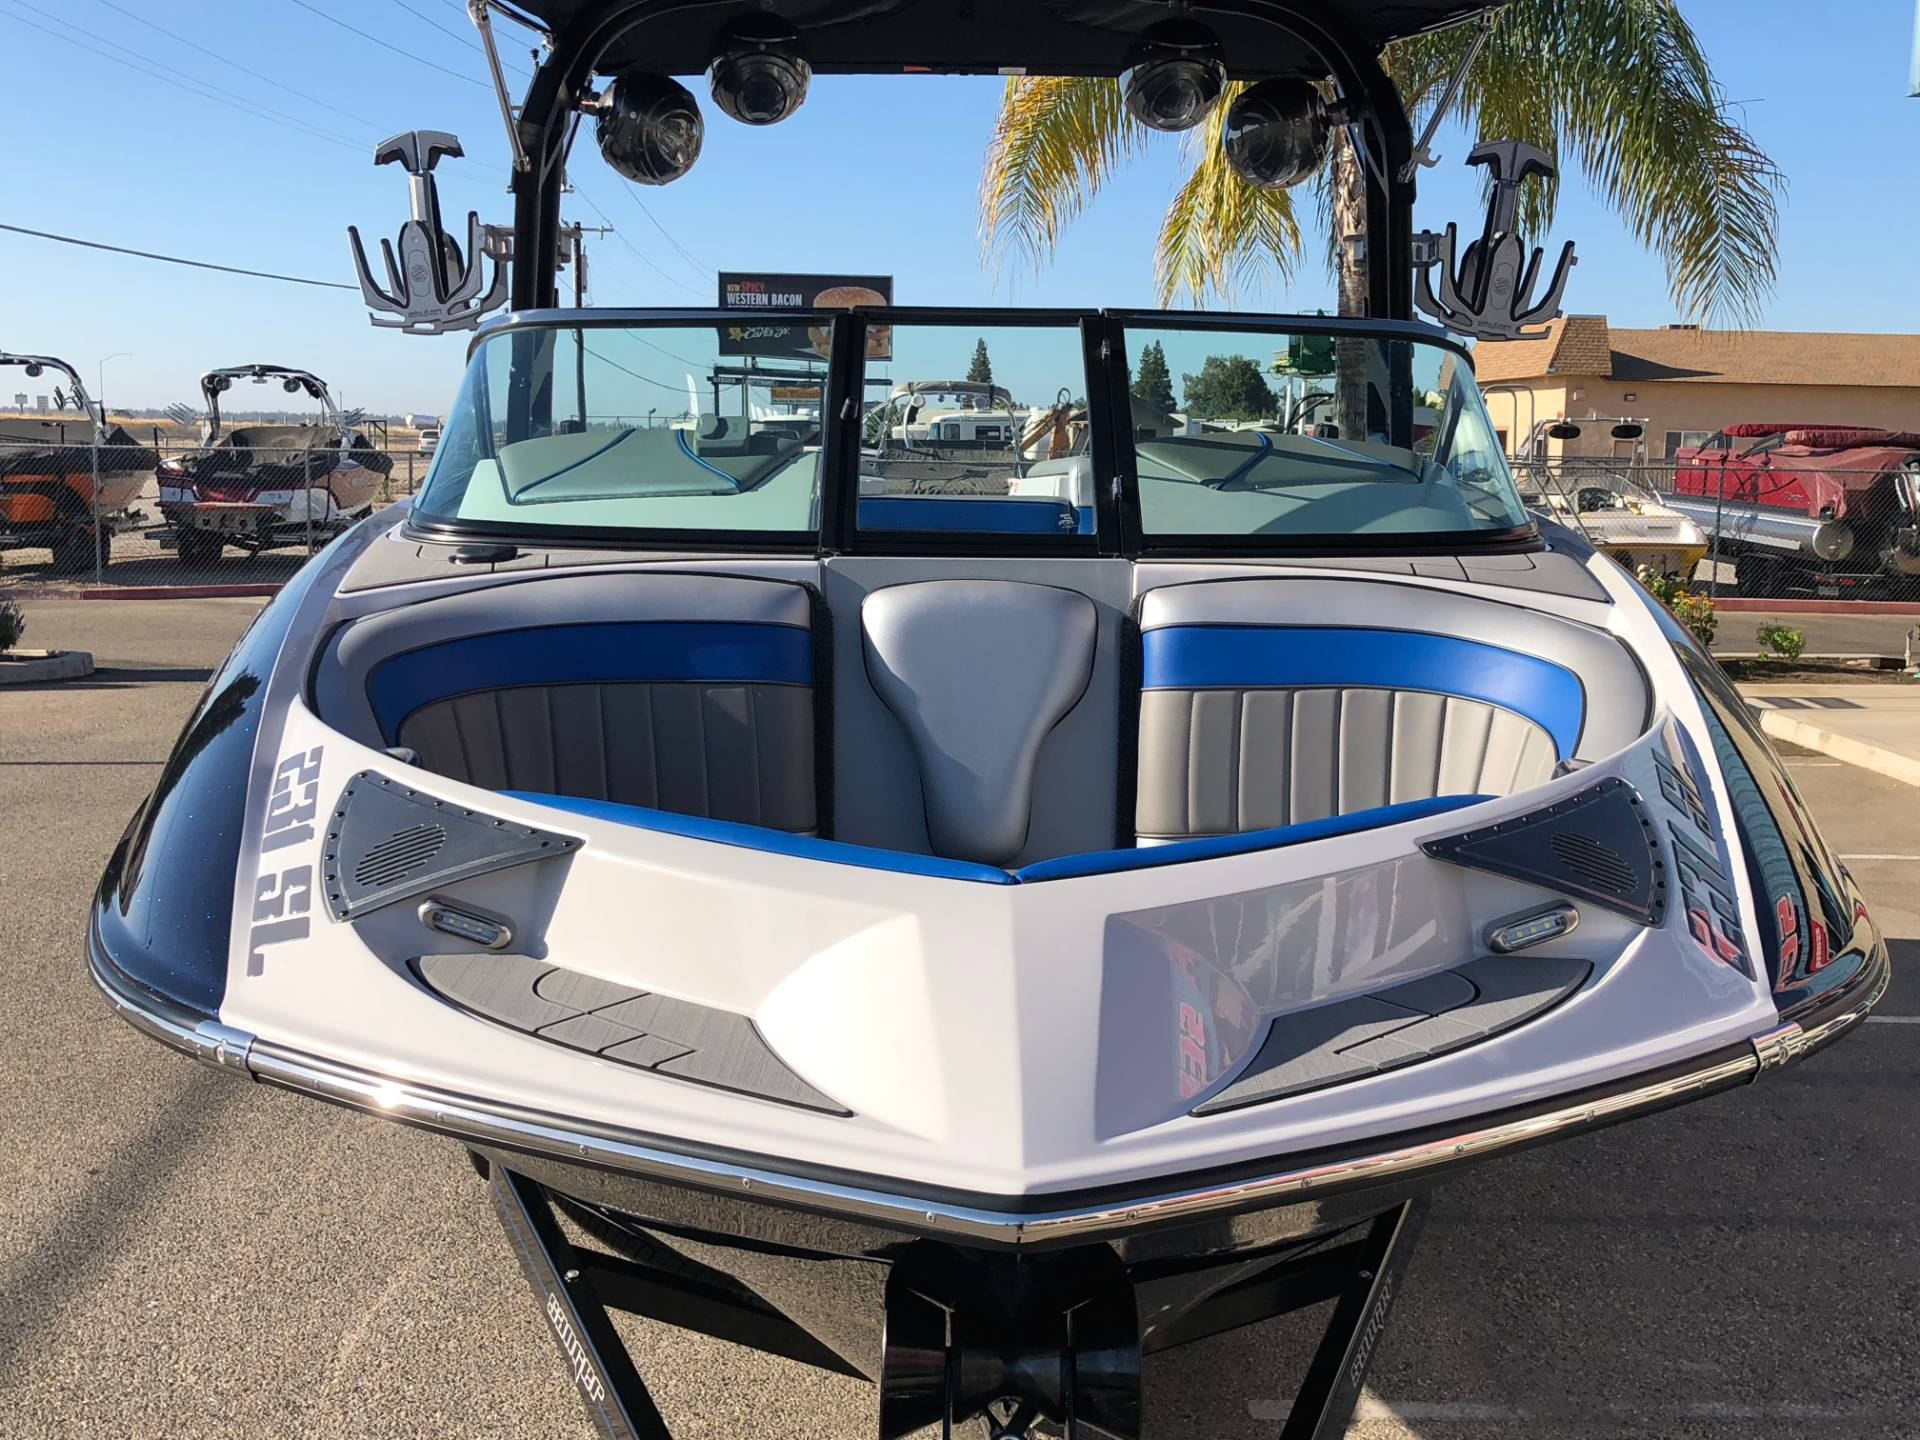 2021 Sanger Boats 231 SL in Madera, California - Photo 4